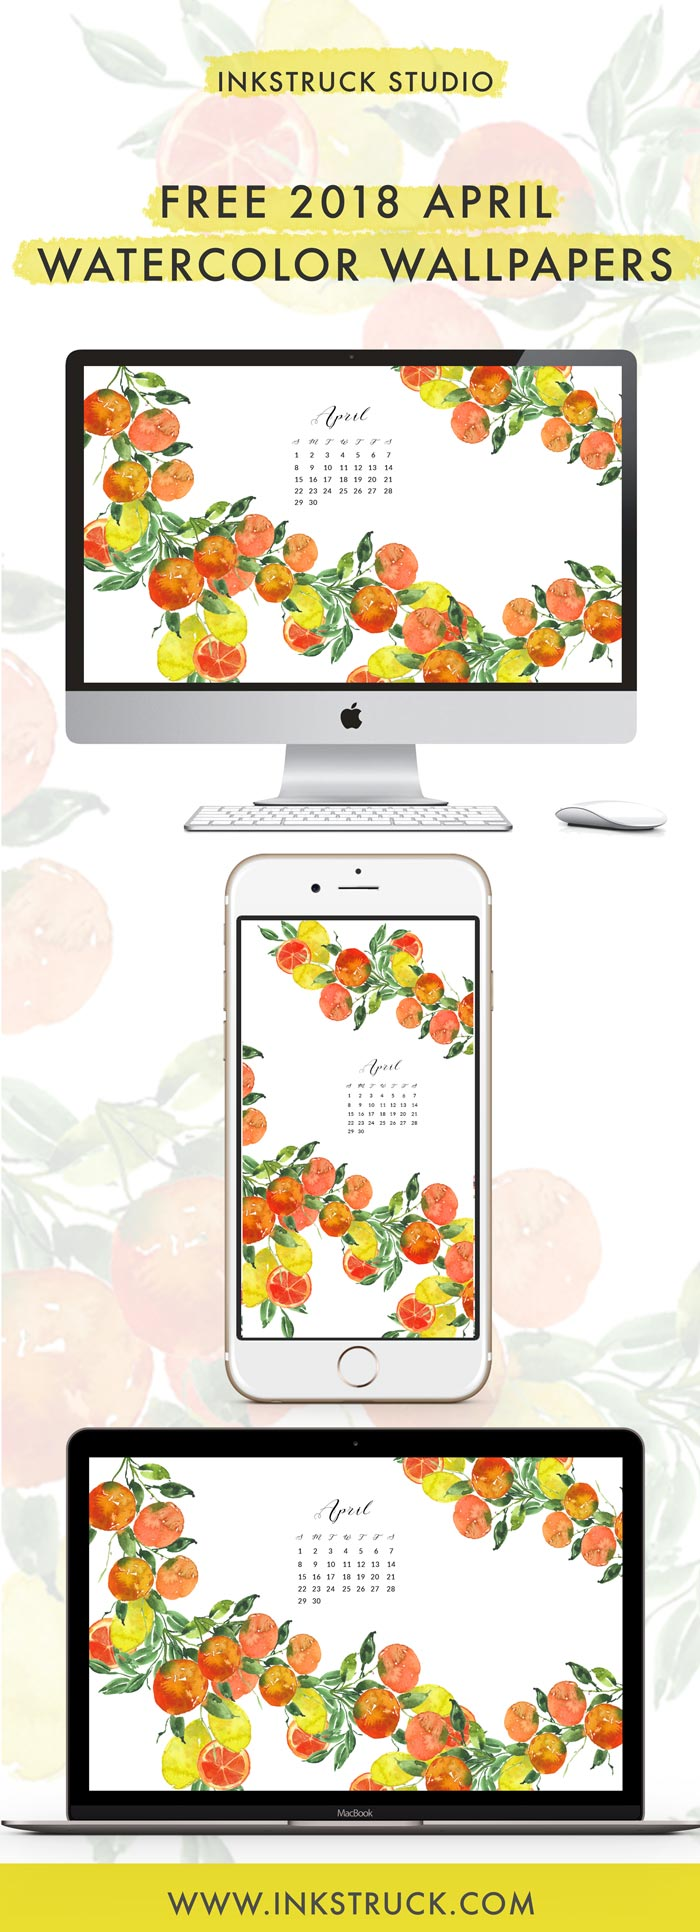 Grab my free 2018 April watercolor wallpaper on the blog now with both dated and undated versions for phones and desktops. - Inkstruck Studio